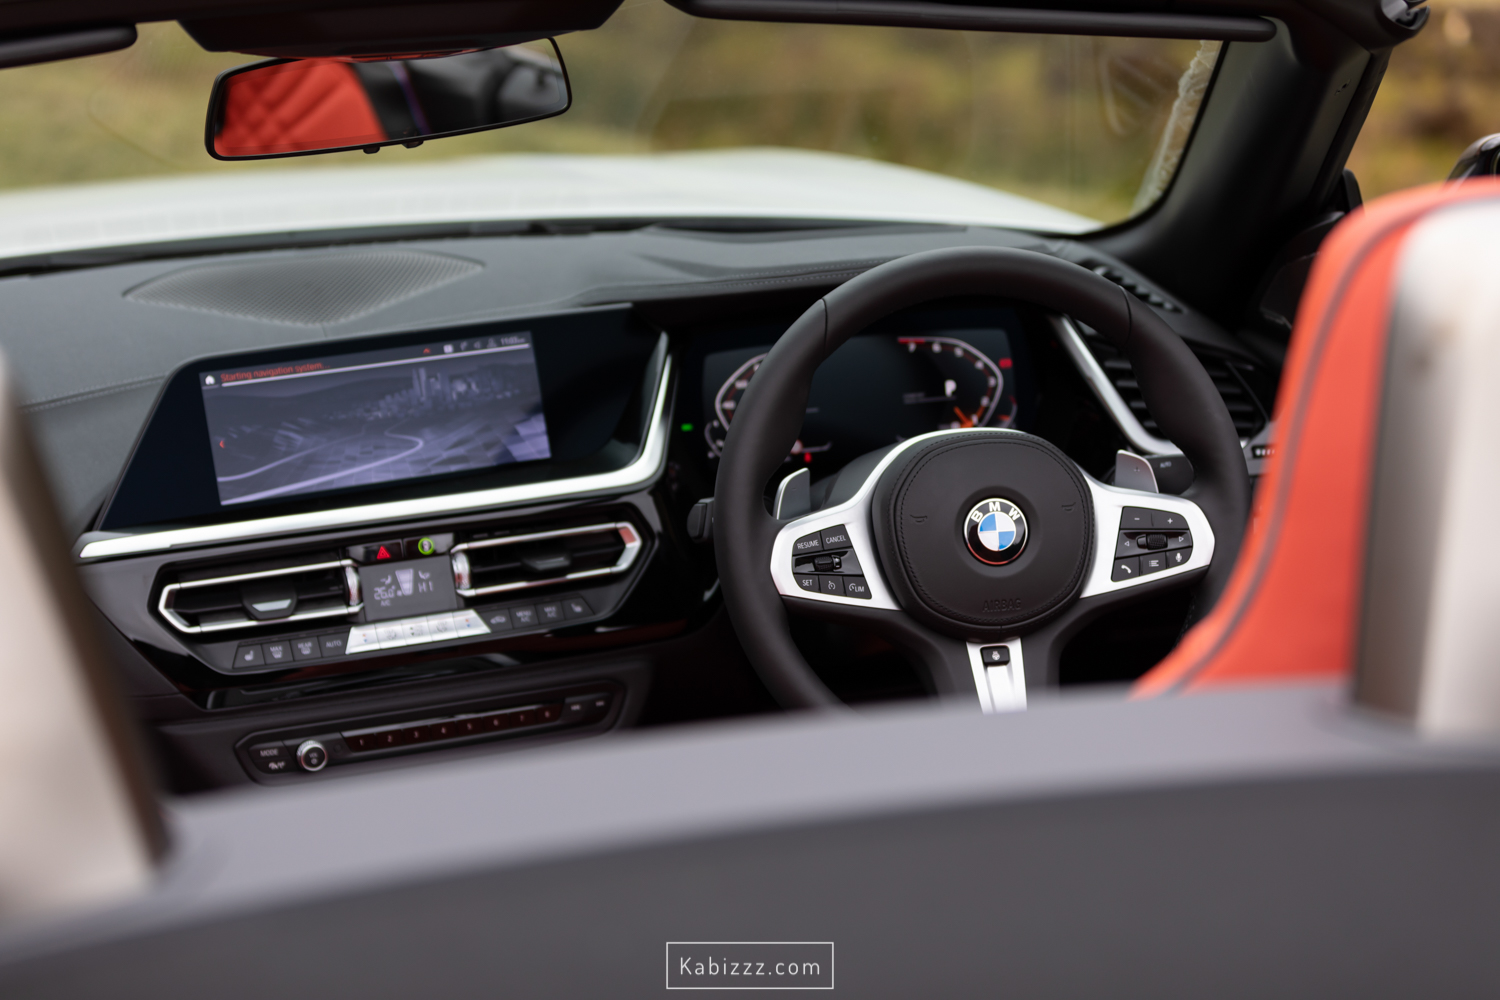 2019_bmw_z4_m40i_automotivephotography_kabizzz-8.jpg